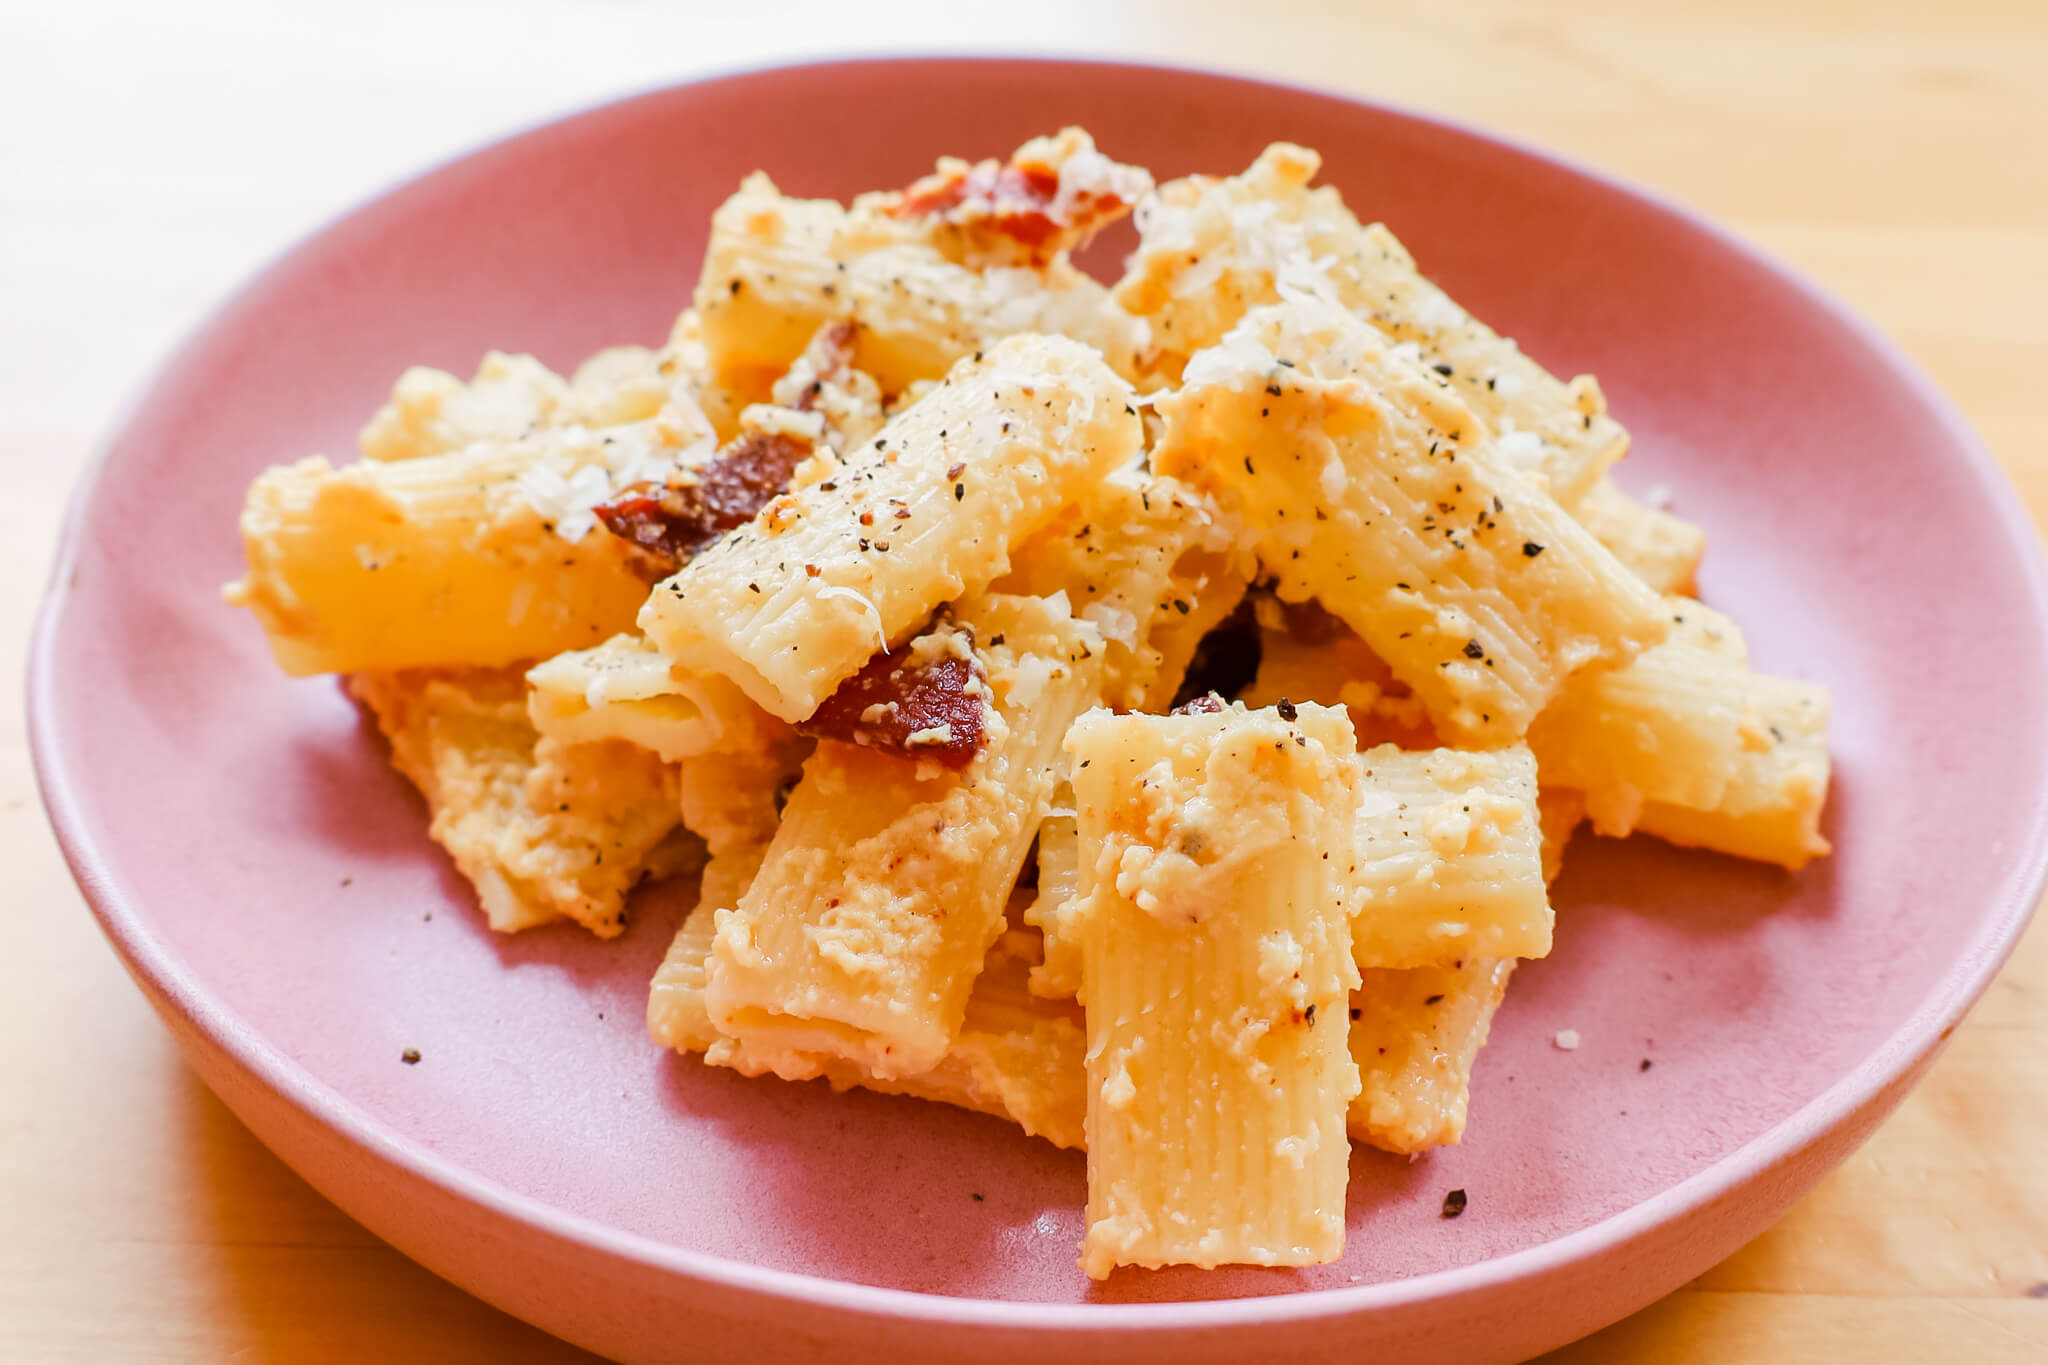 A plate of hearty pasta with parmesan.